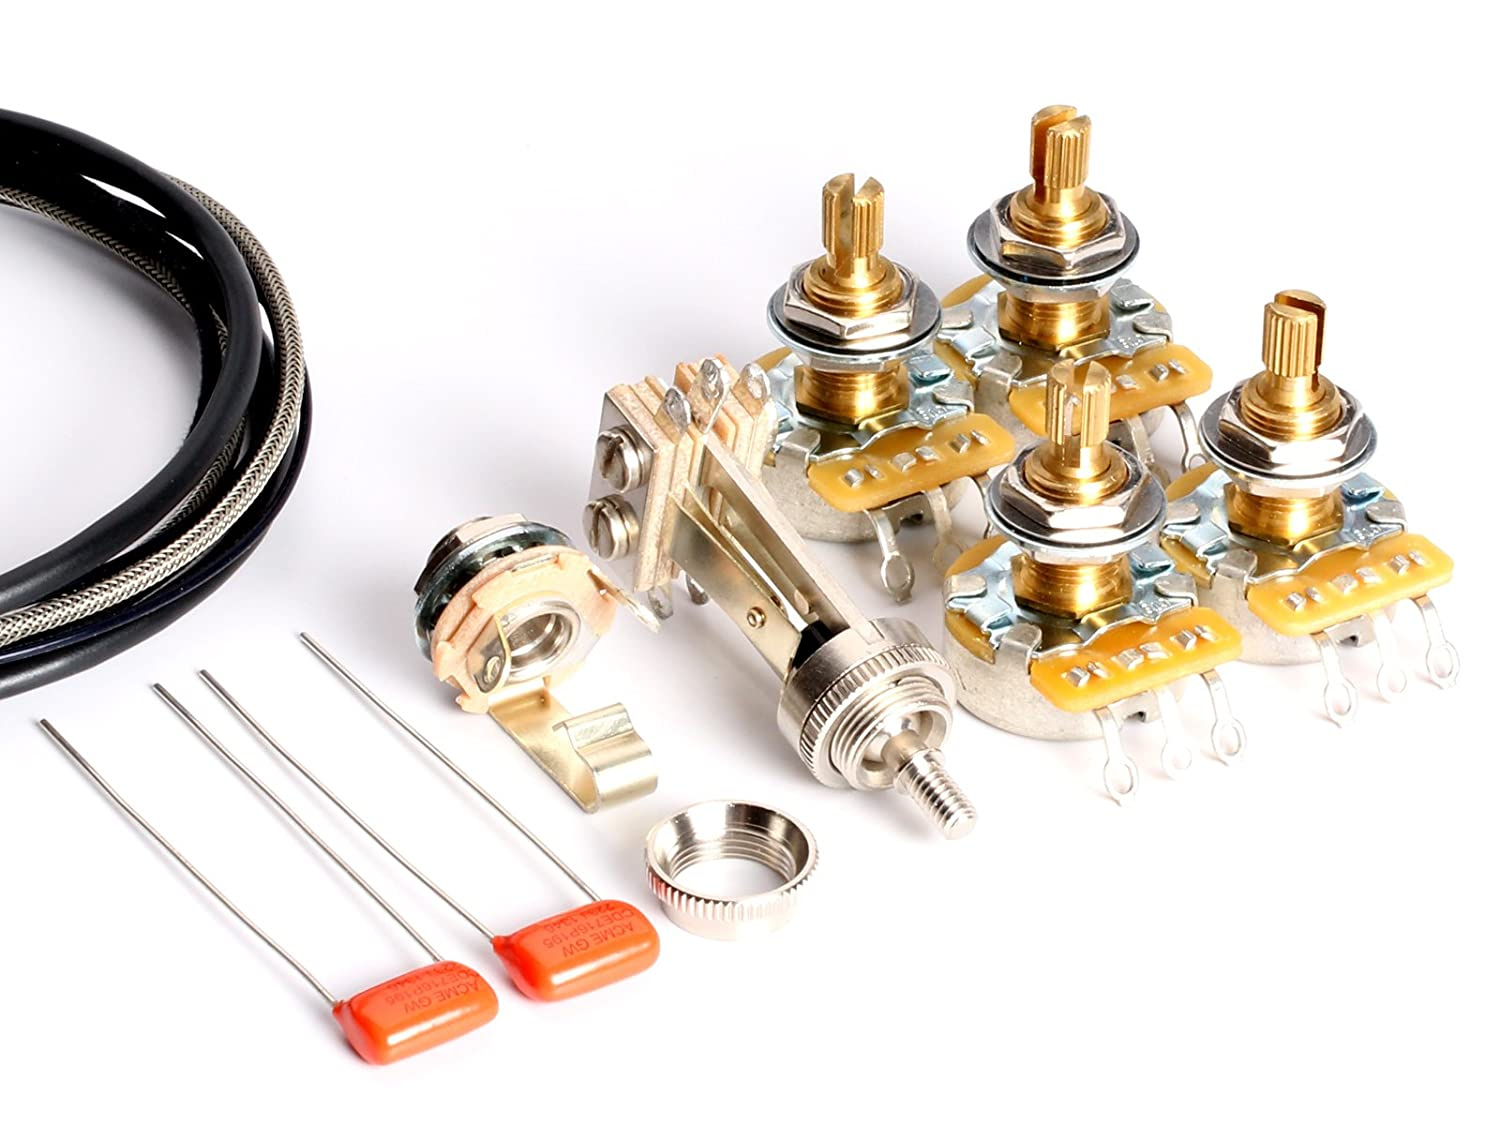 Amazon.com: ToneShaper Guitar Wiring Kit, for Les Paul Standard ...